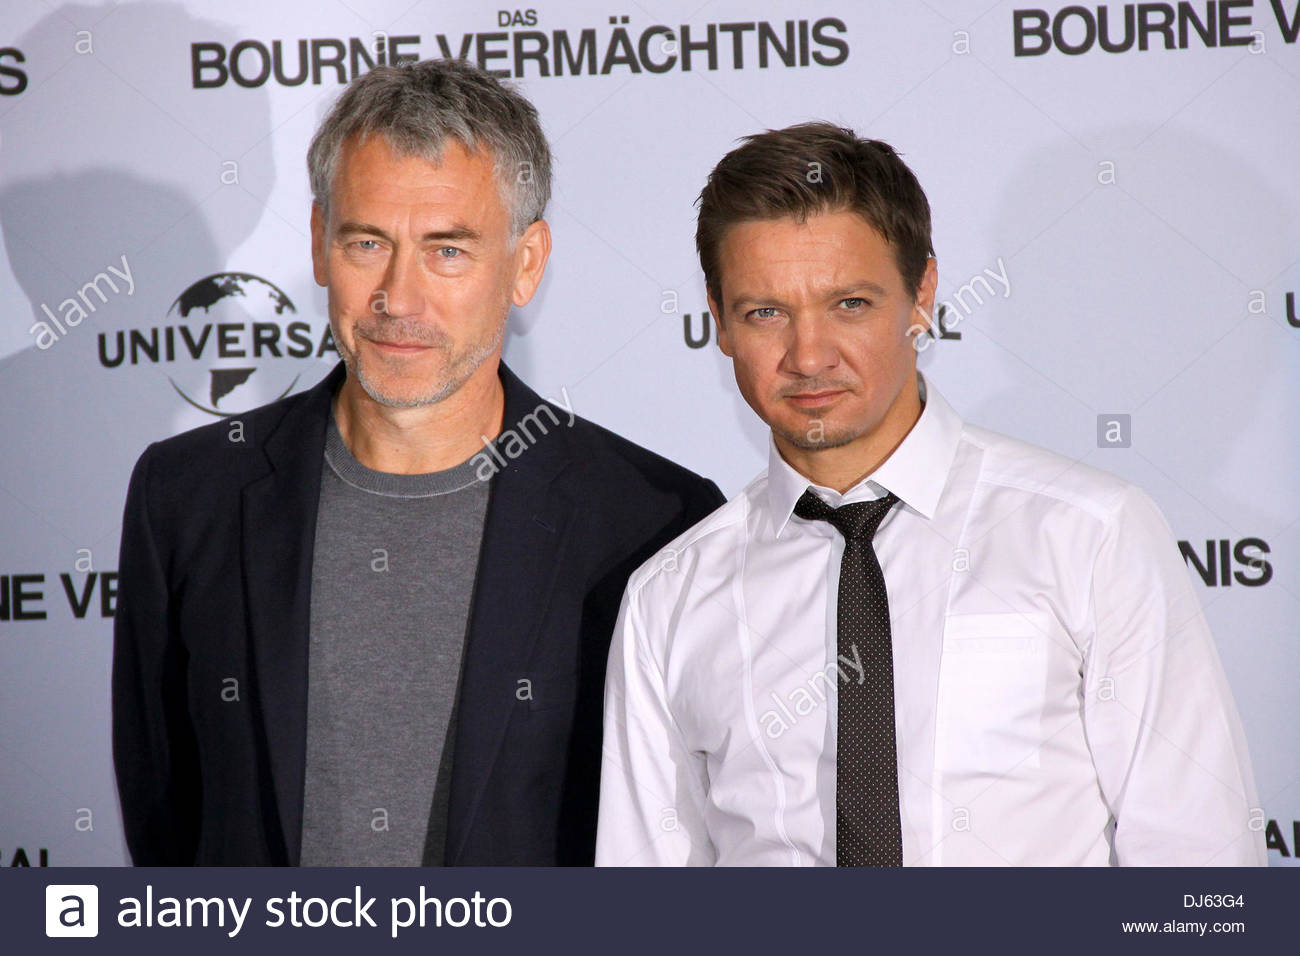 tony gilroy matt damontony gilroy rogue one, tony gilroy movies, tony gilroy scripts, tony gilroy, тони гилрой, tony gilroy wiki, tony gilroy michael clayton, tony gilroy net worth, tony gilroy wife, tony gilroy house of cards, tony gilroy abc radio, tony gilroy matt damon, tony gilroy interview, tony gilroy married, tony gilroy land rover, tony gilroy bafta, tony gilroy screenplay, tony gilroy wikipedia, tony gilroy twitter, tony gilroy contact